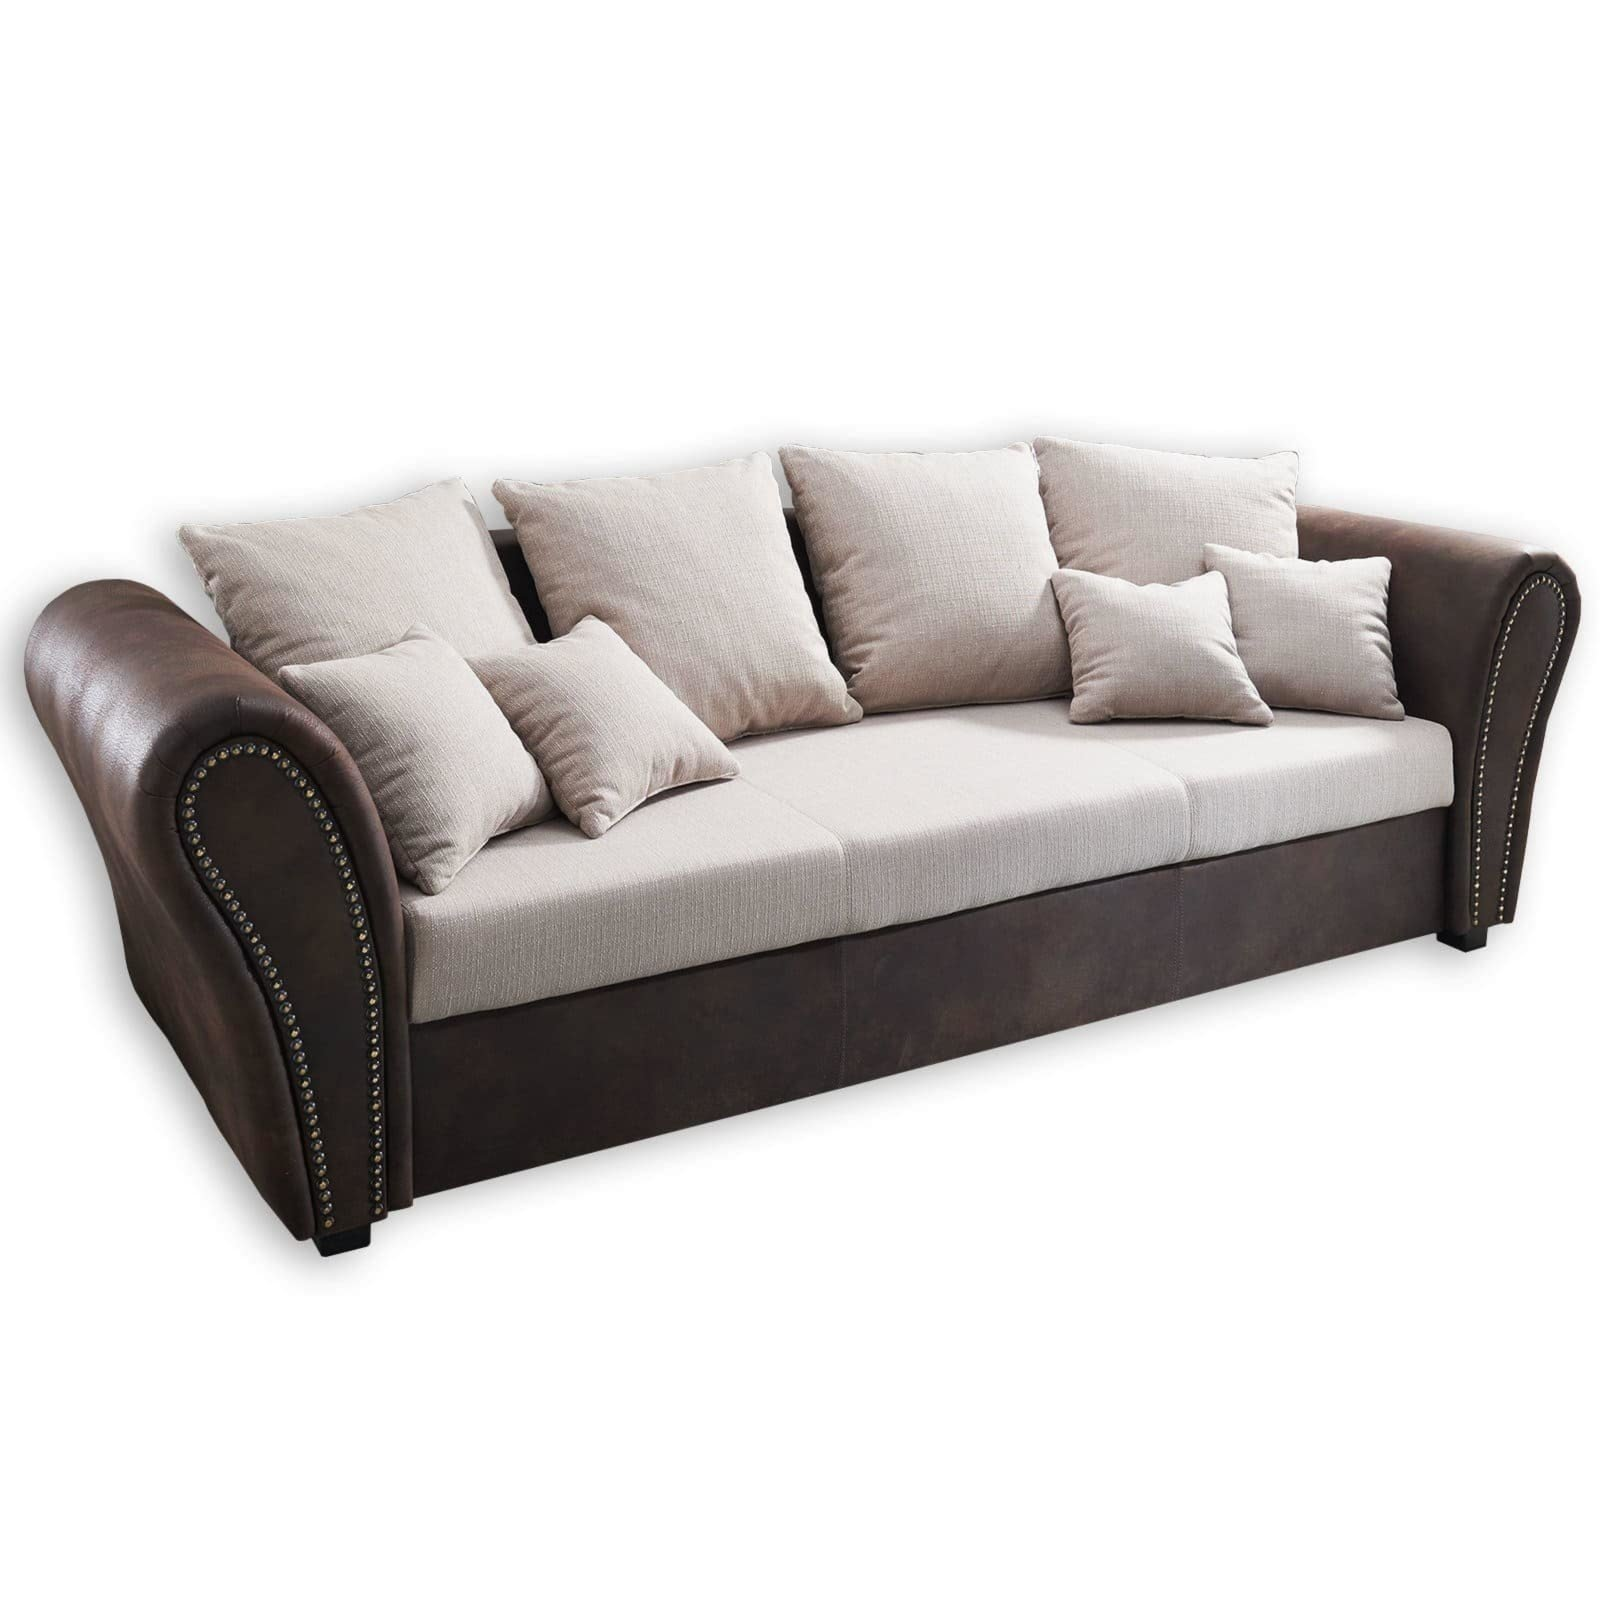 roller big sofa beige braun mit kissen ebay. Black Bedroom Furniture Sets. Home Design Ideas